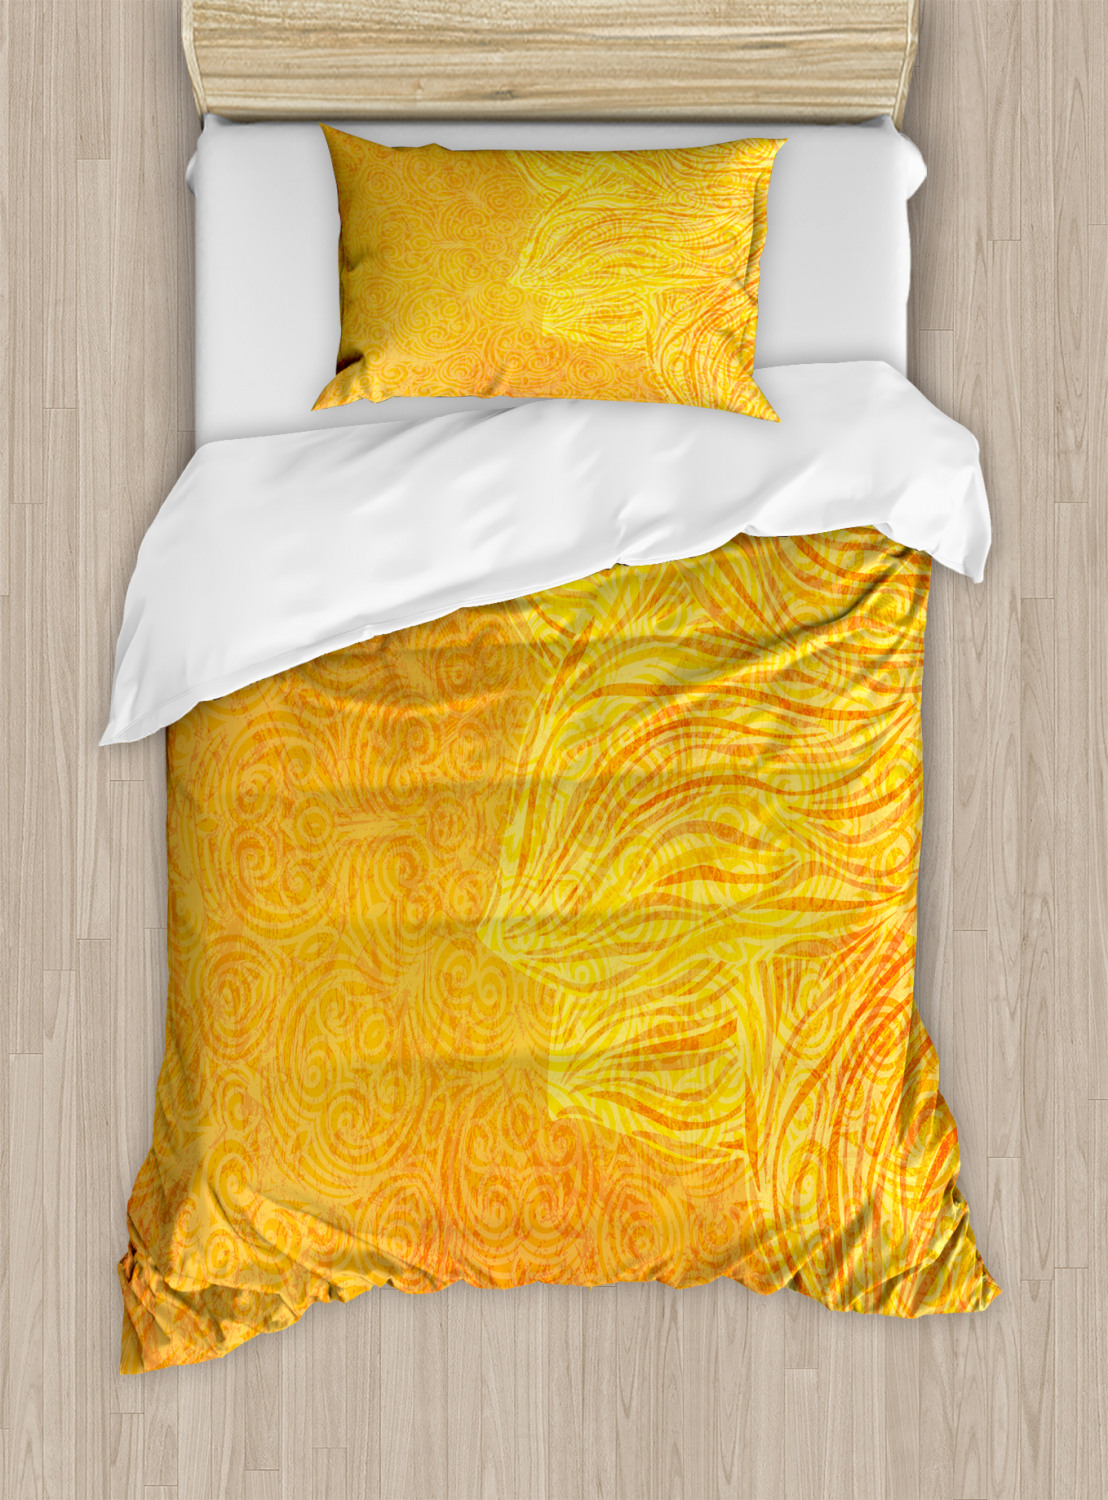 Tangerine Duvet Cover Set Twin Queen King Sizes with Pillow Shams